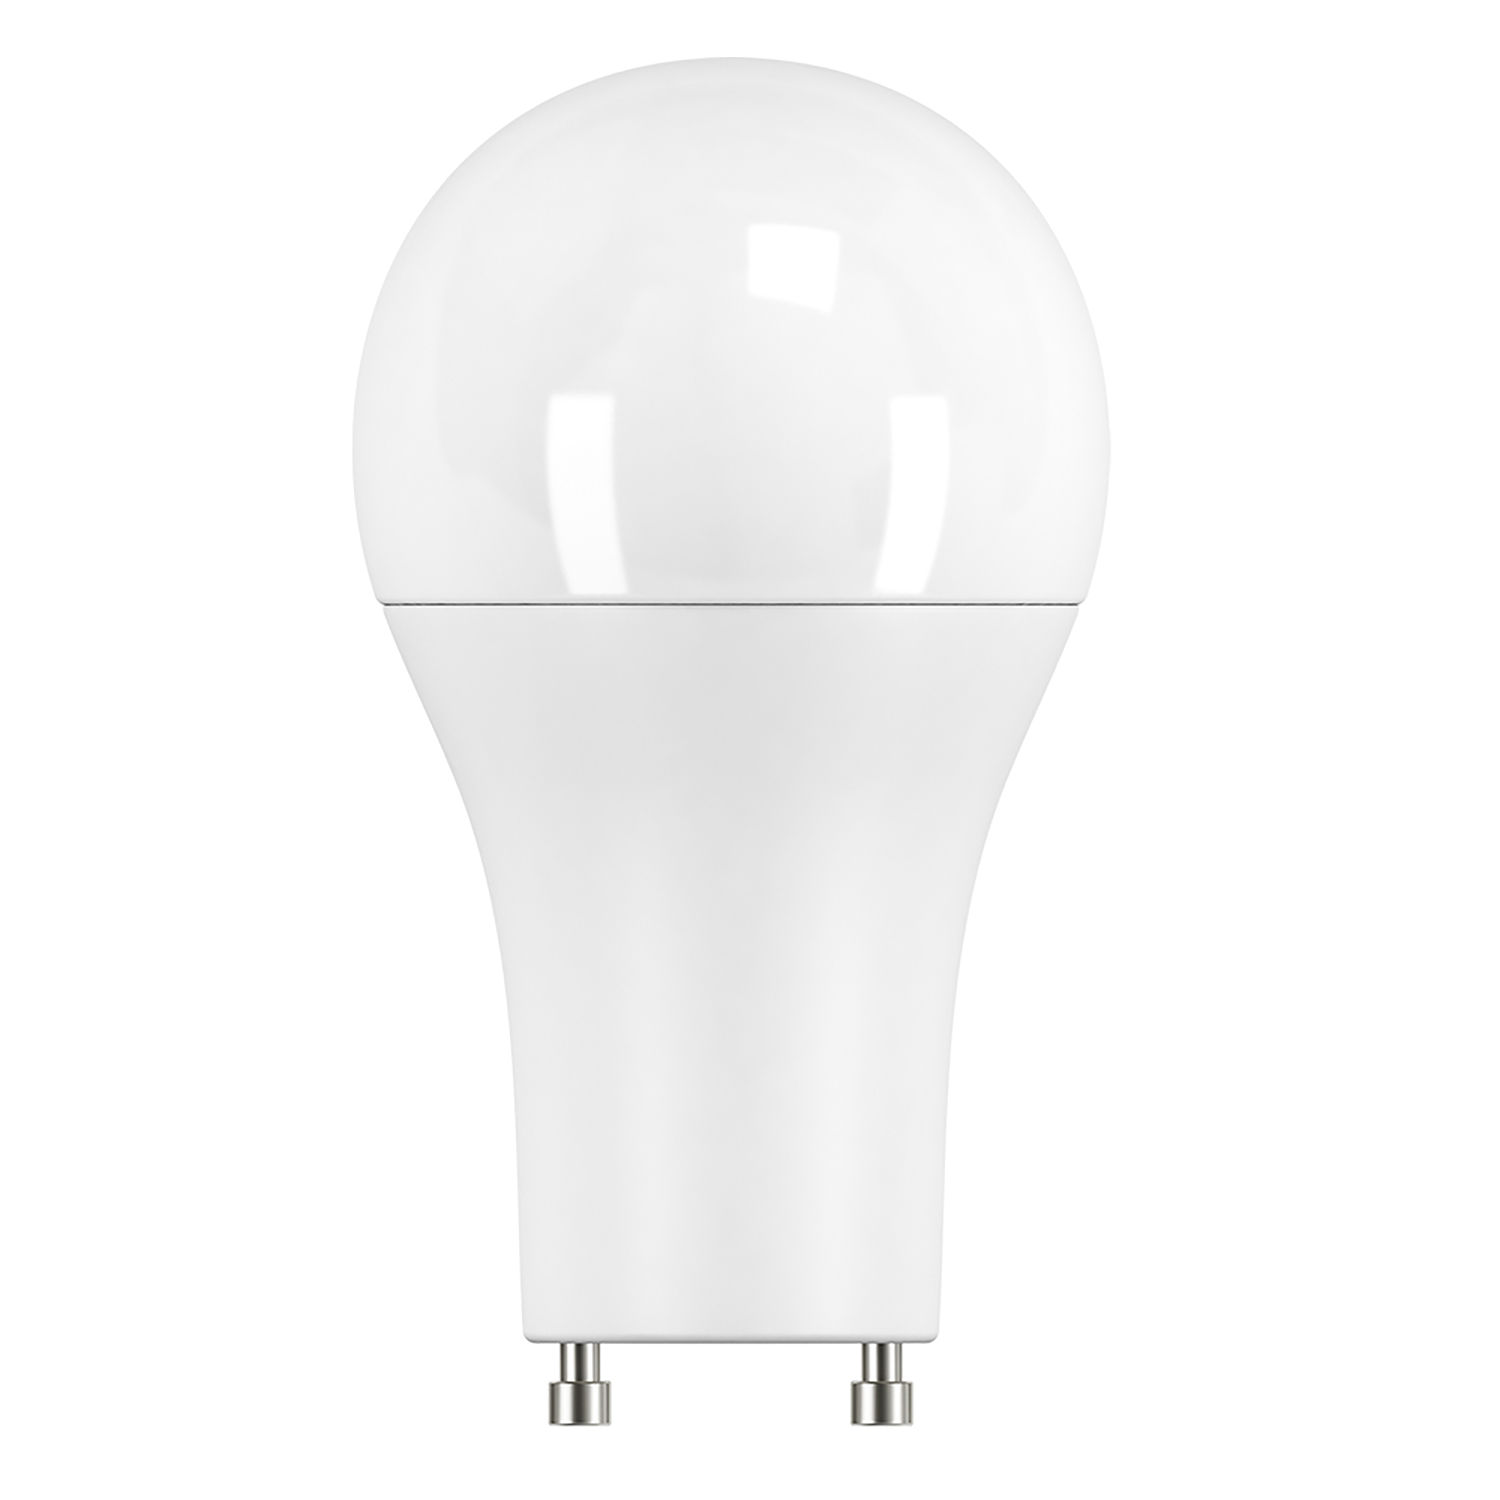 A19FR15/840/OMNI2/GU24/LED 83189 LED A19 15.5W 4000K GU24 NON-DIMMABLE OMNIDIRECTIONAL ProLED